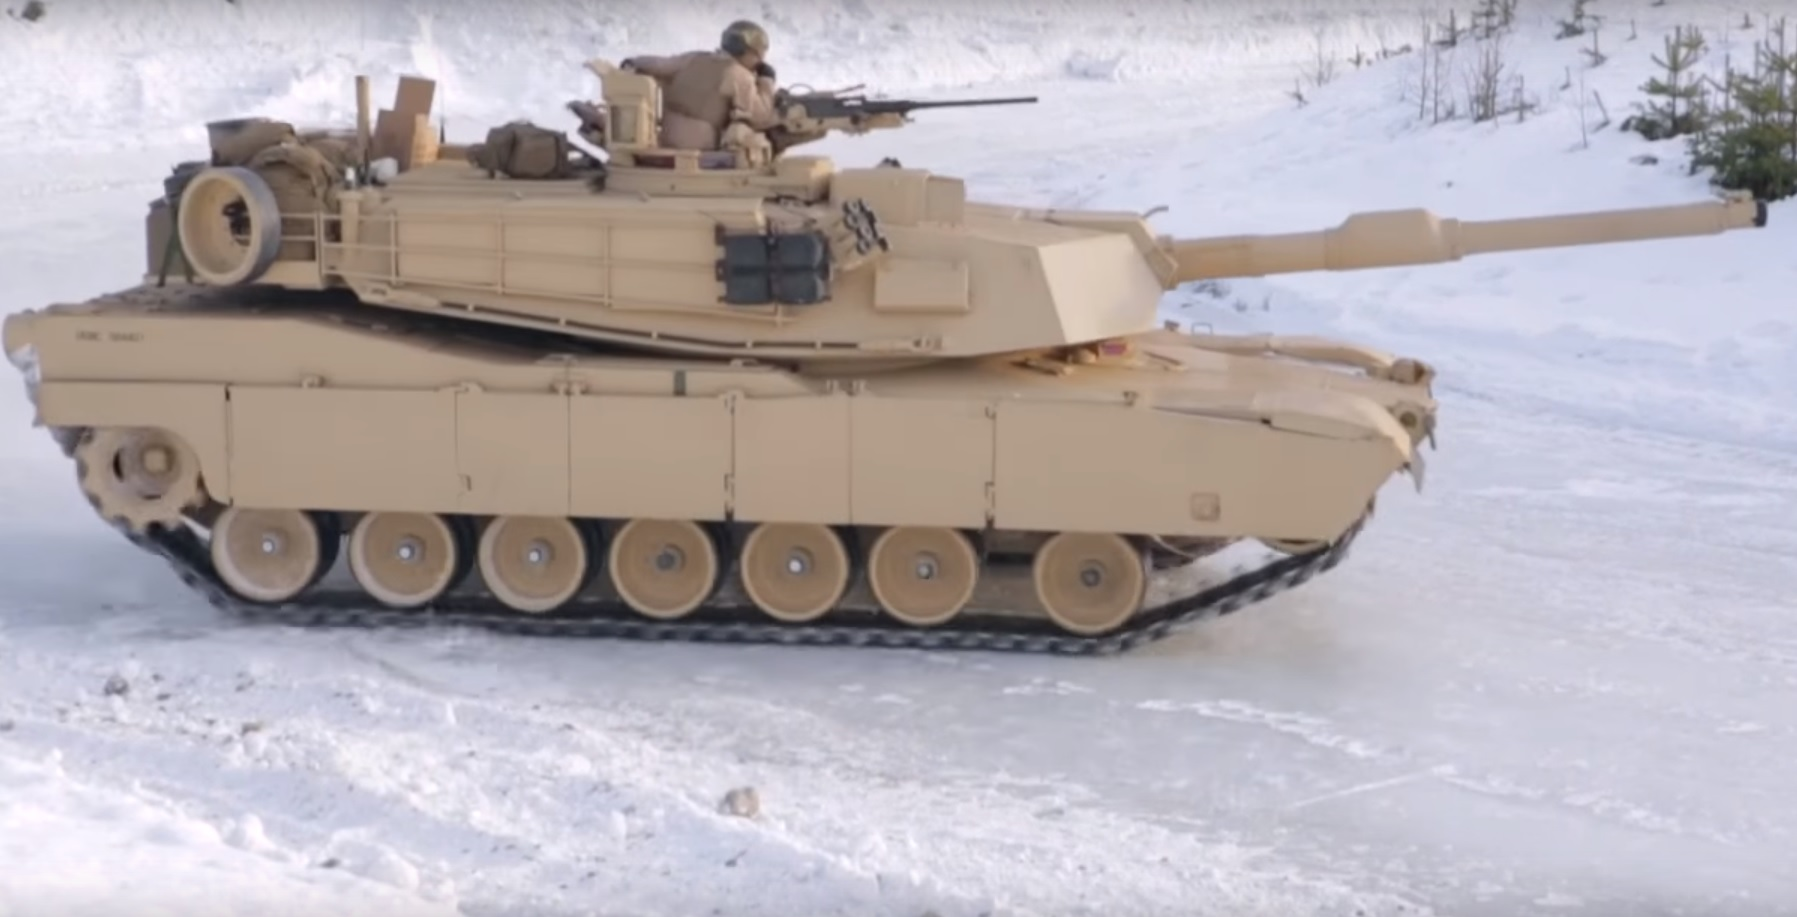 Blog Post Watch Us Marines Drift An Abrams M1 Tank On